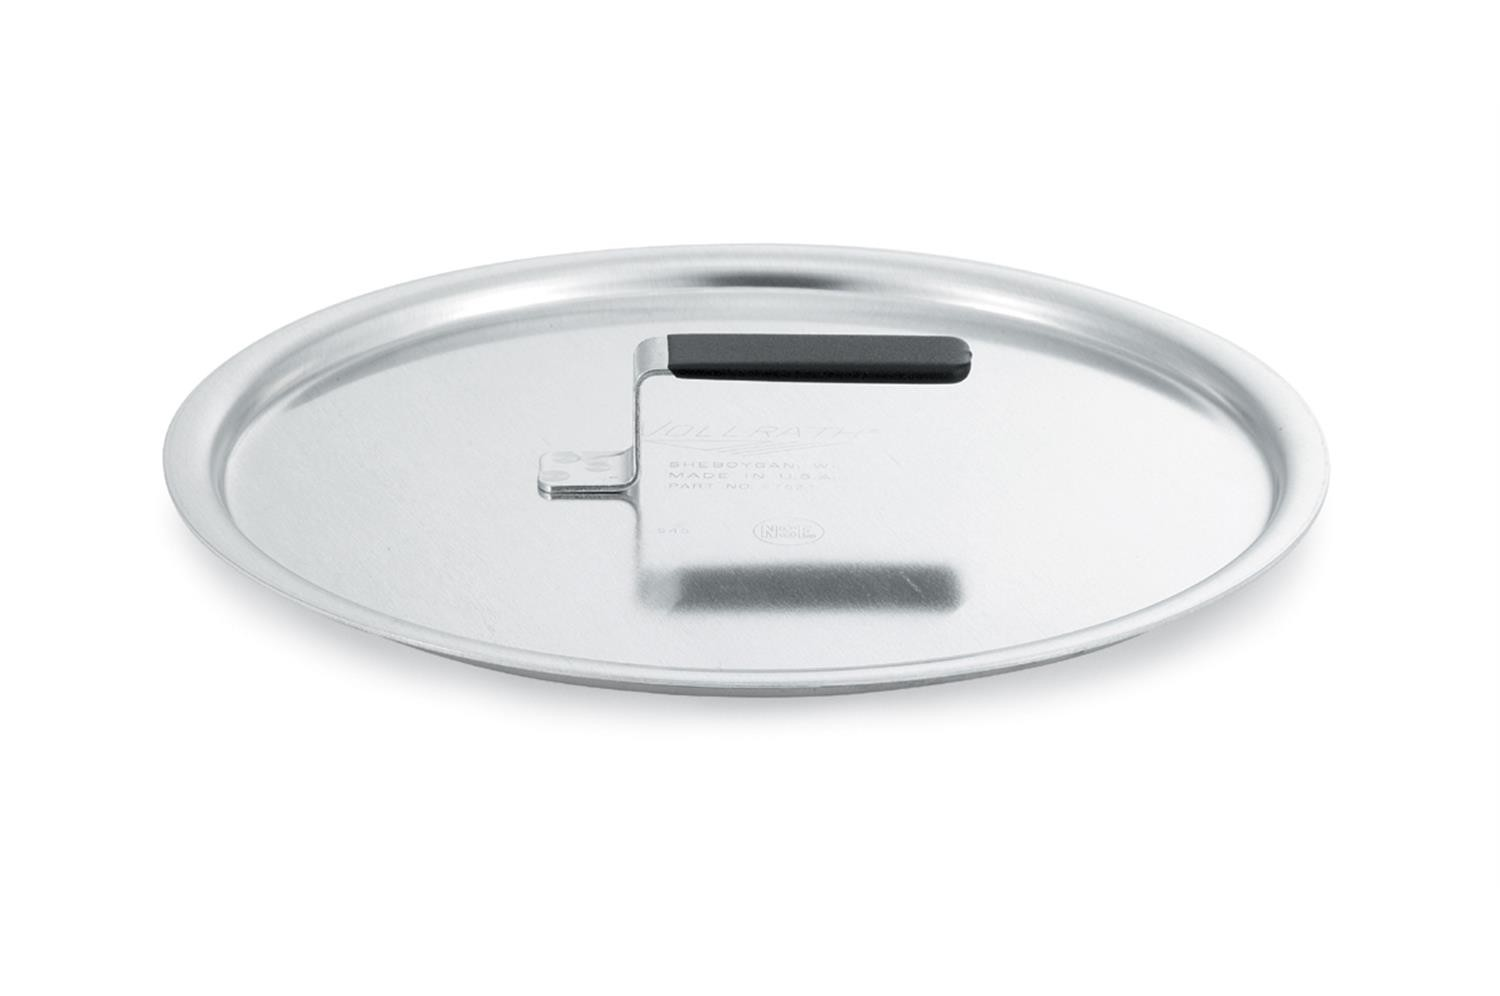 Vollrath 67521 Wear-Ever Flat Aluminum Cover with Torogard Handle 12-3/4